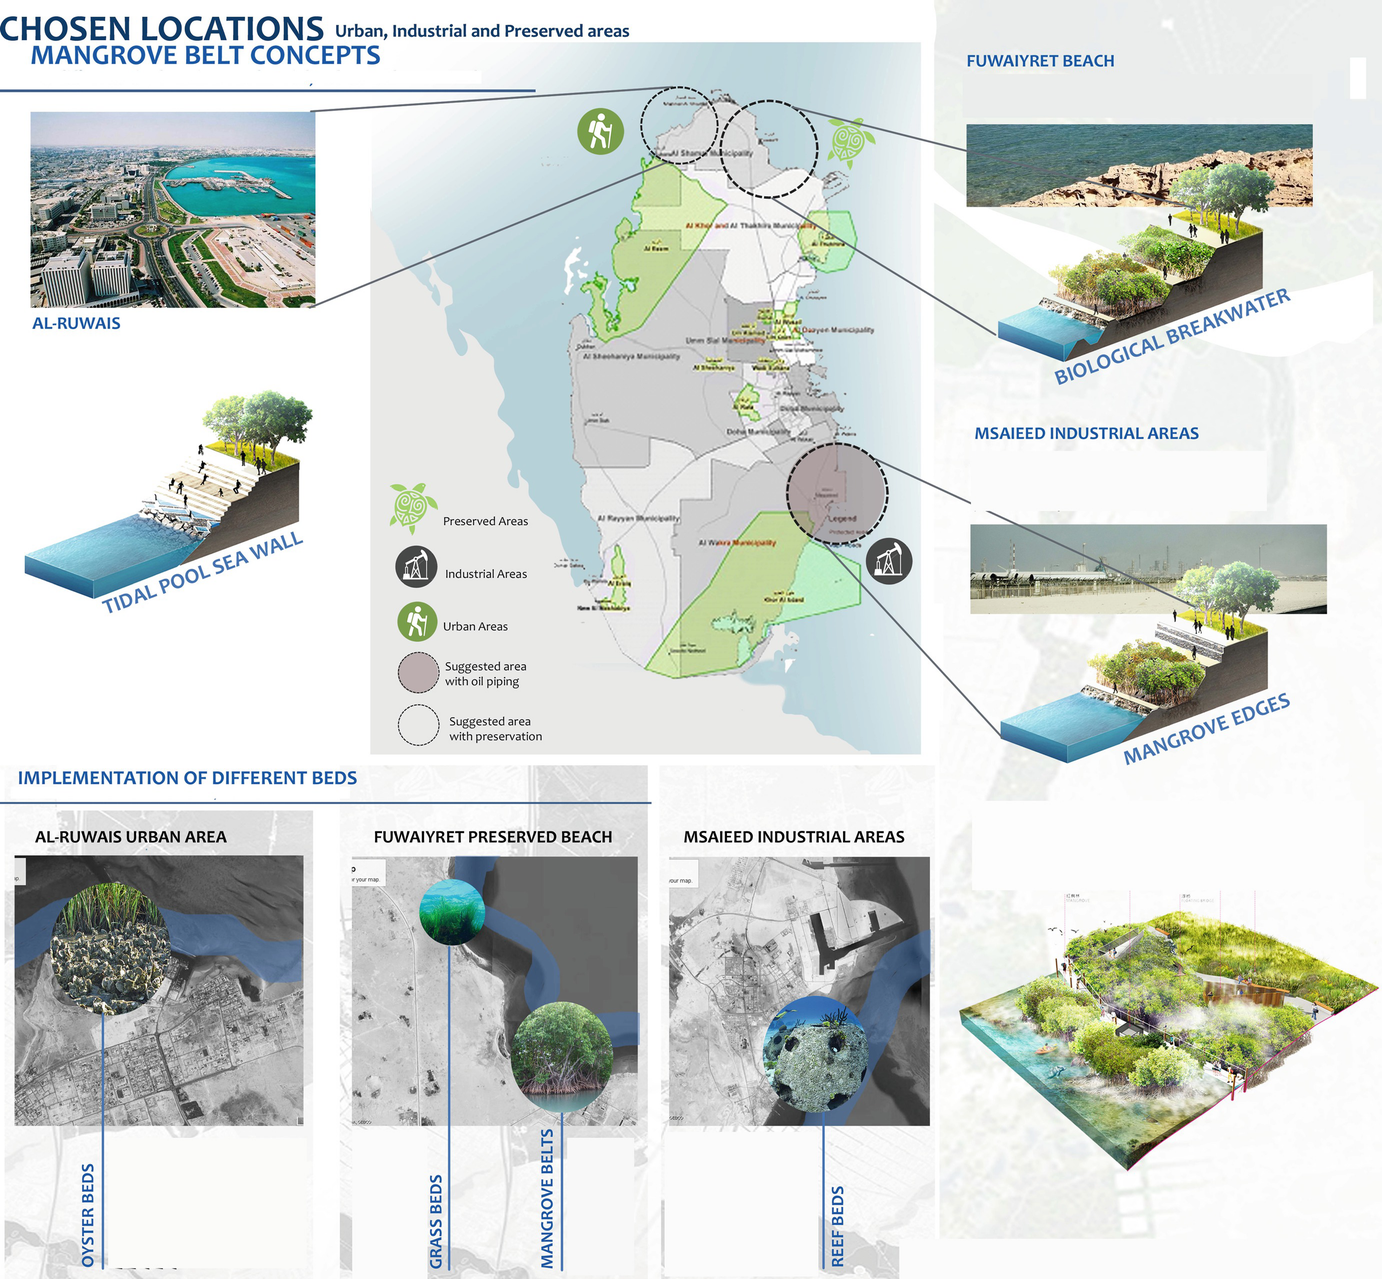 Blue Design for Urban Resilience in Drylands: The Case of